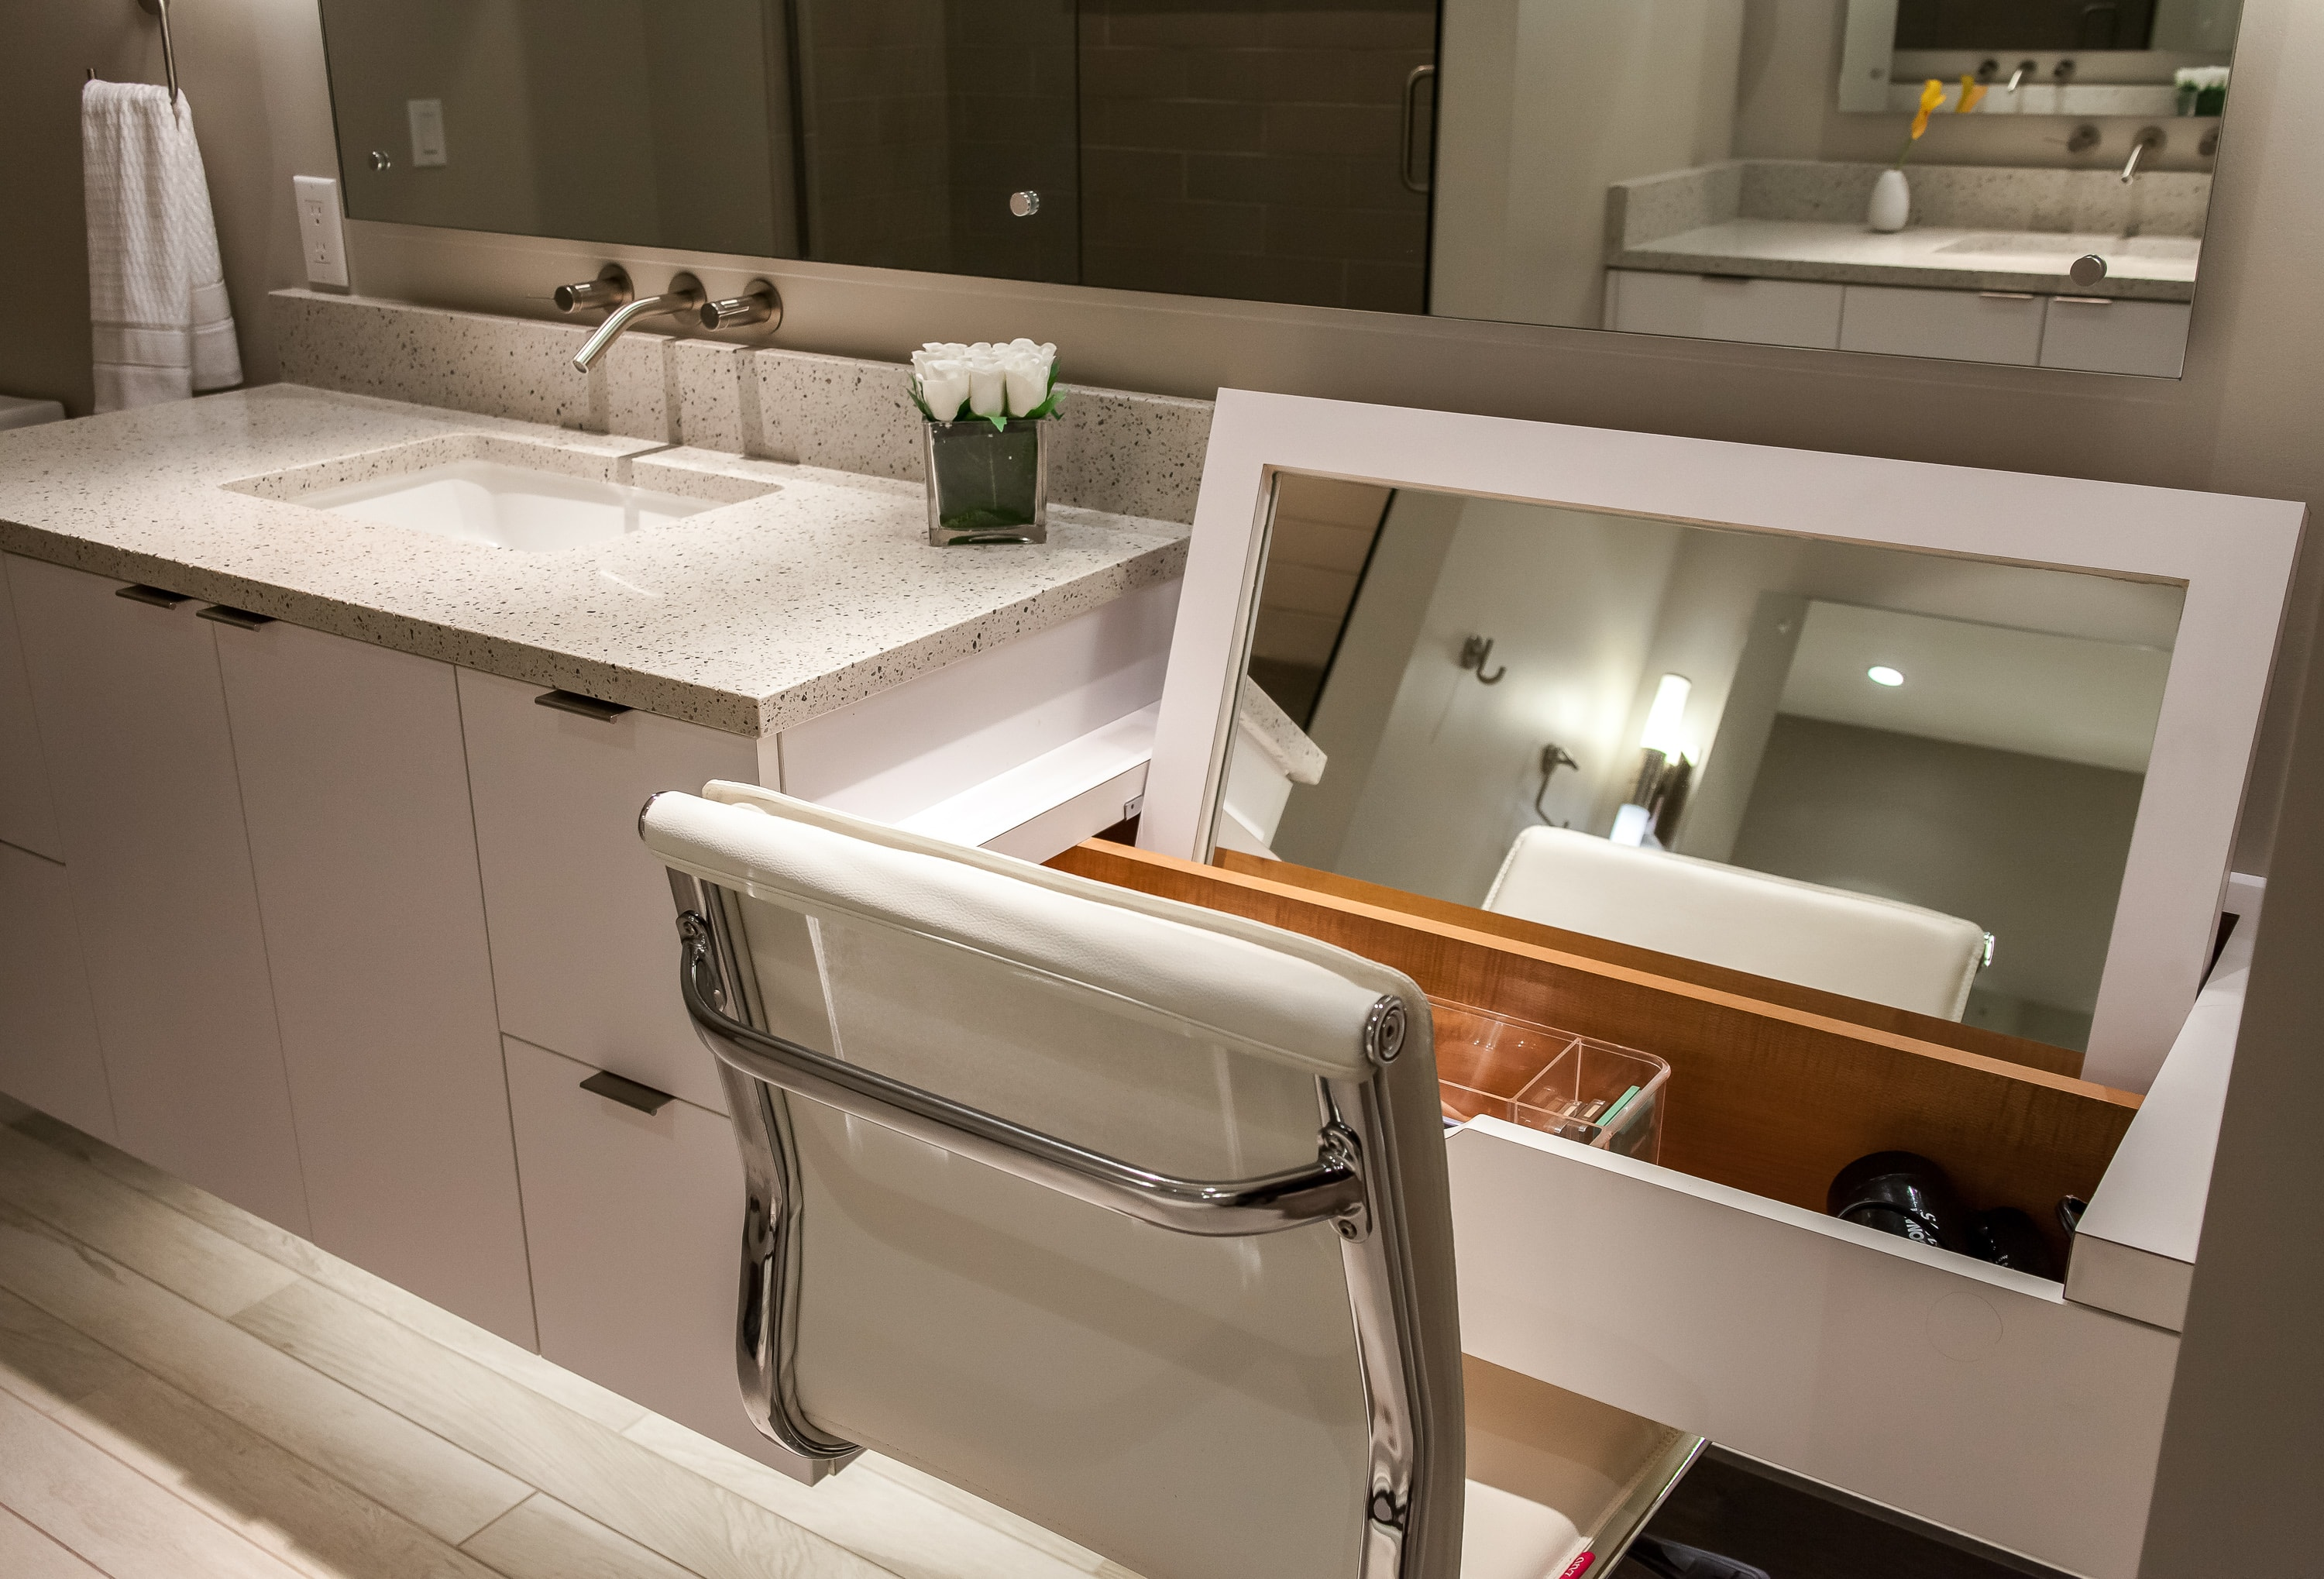 custom makeup vanity in this master bathroom remodel in denver